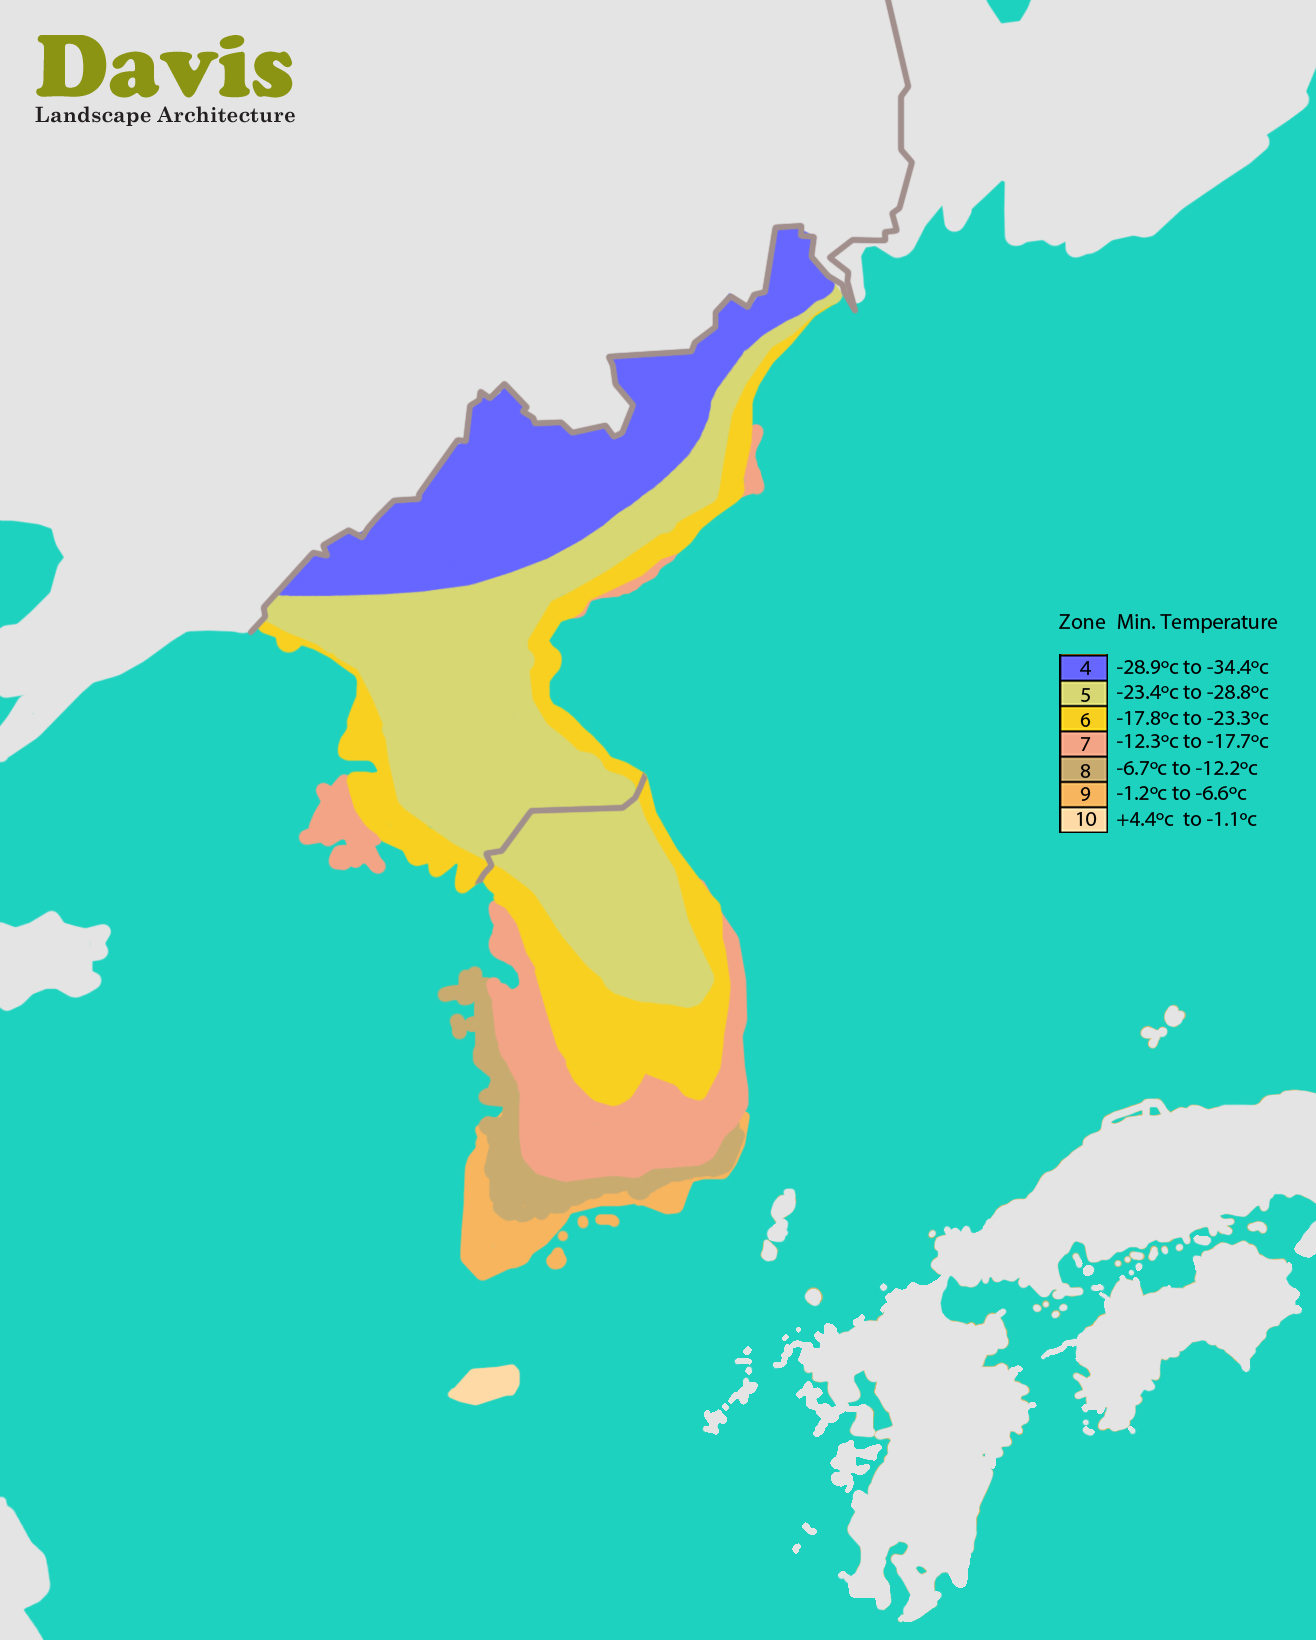 Korea Hardiness Map Landscape Architects Pages - Japan climate zone map